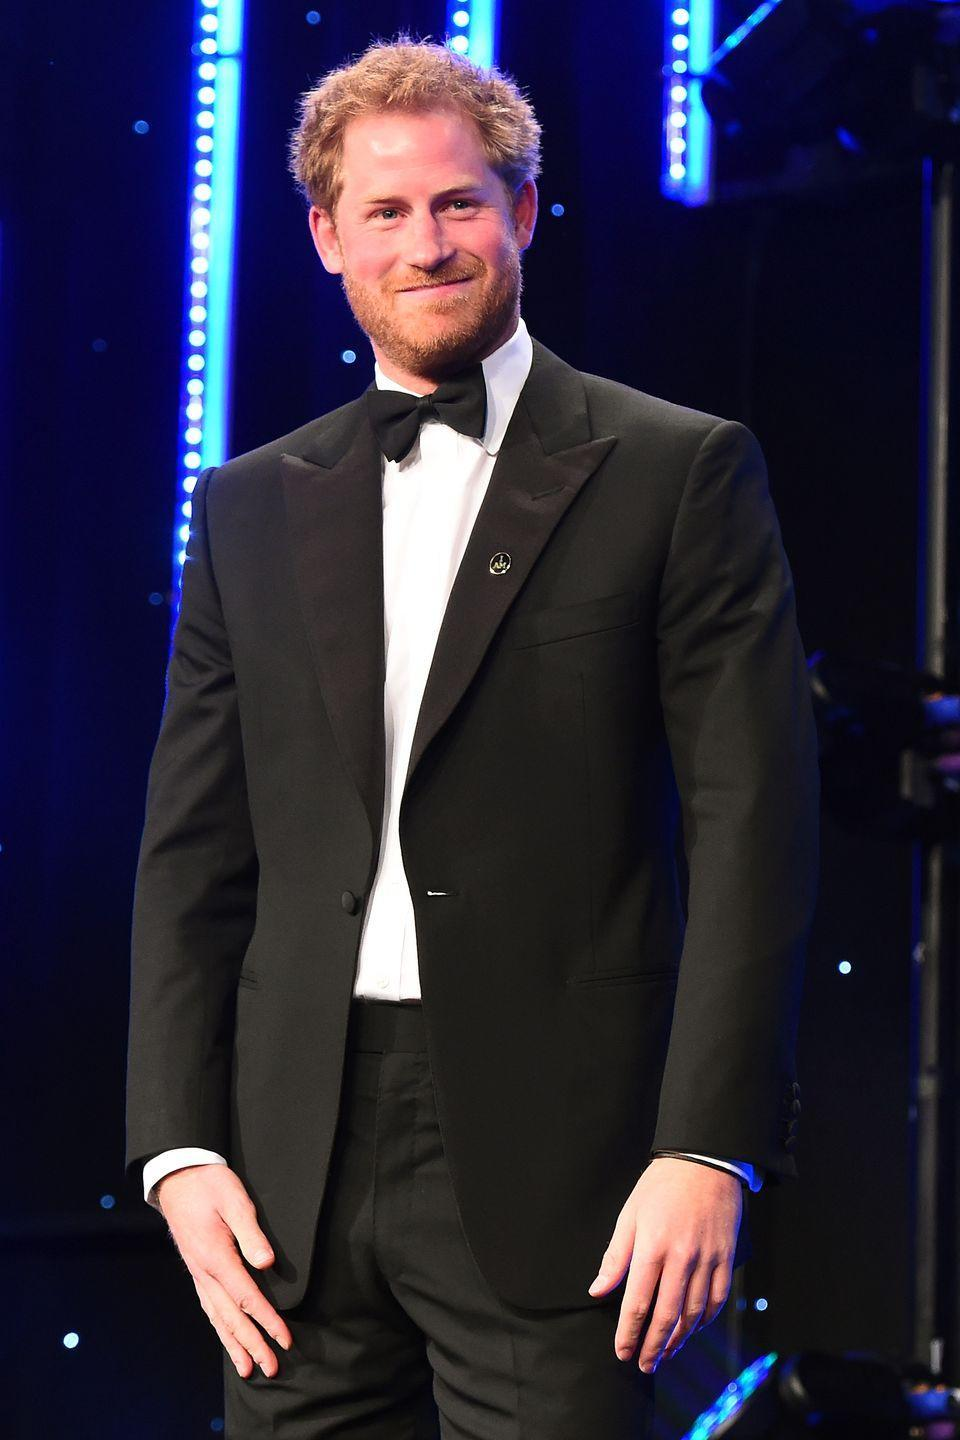 <p>The prince smiles onstage during the BT Sport Industry Awards in London.</p>